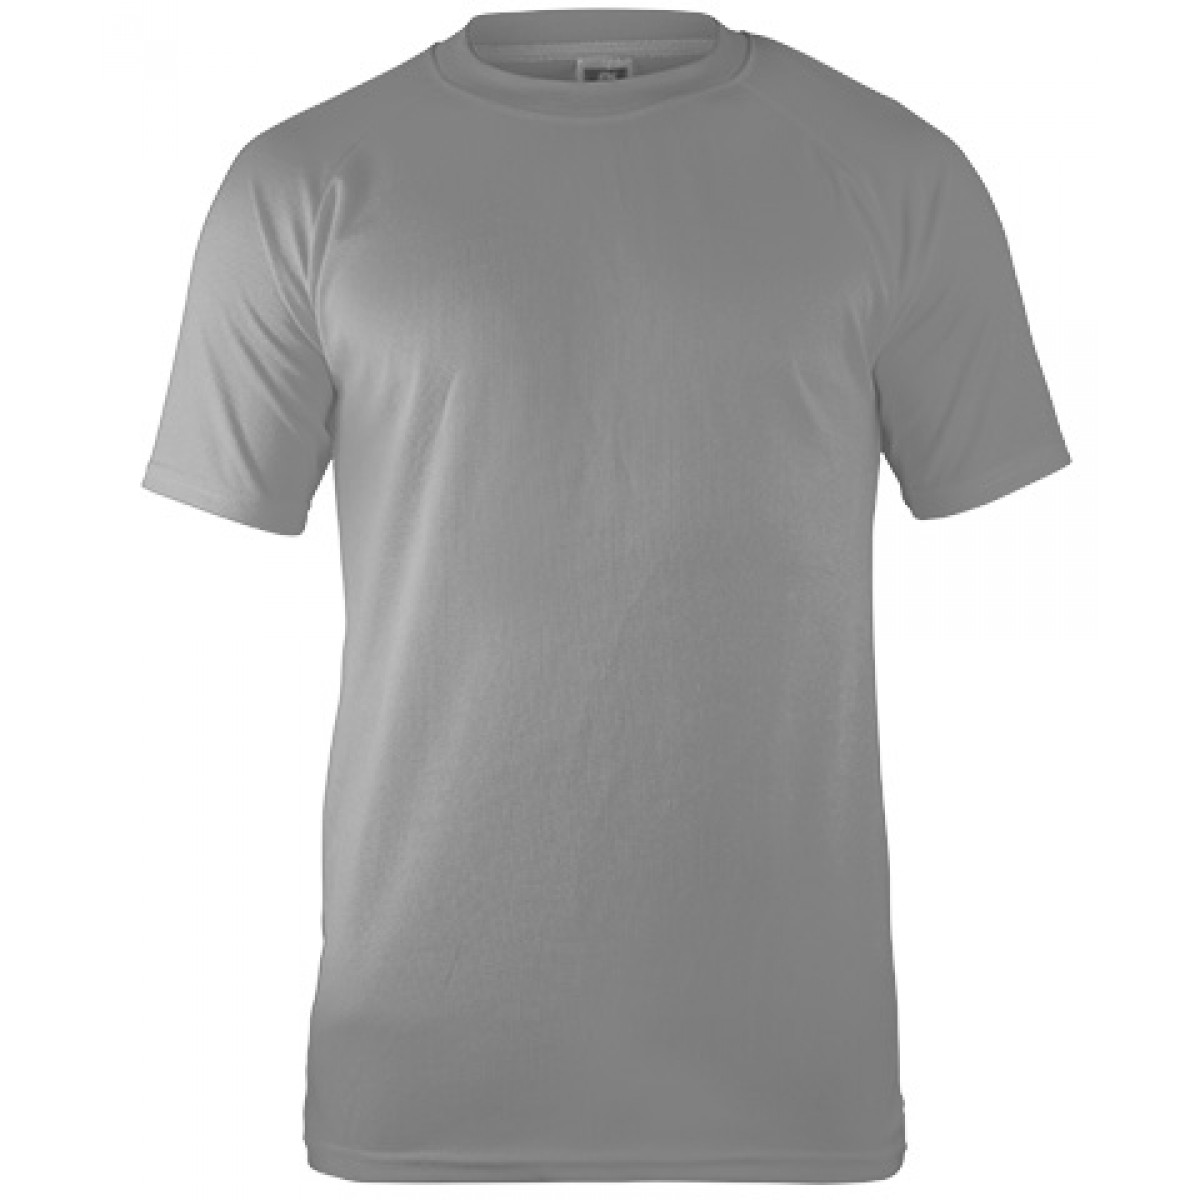 Performance T-shirt-Gray -YS